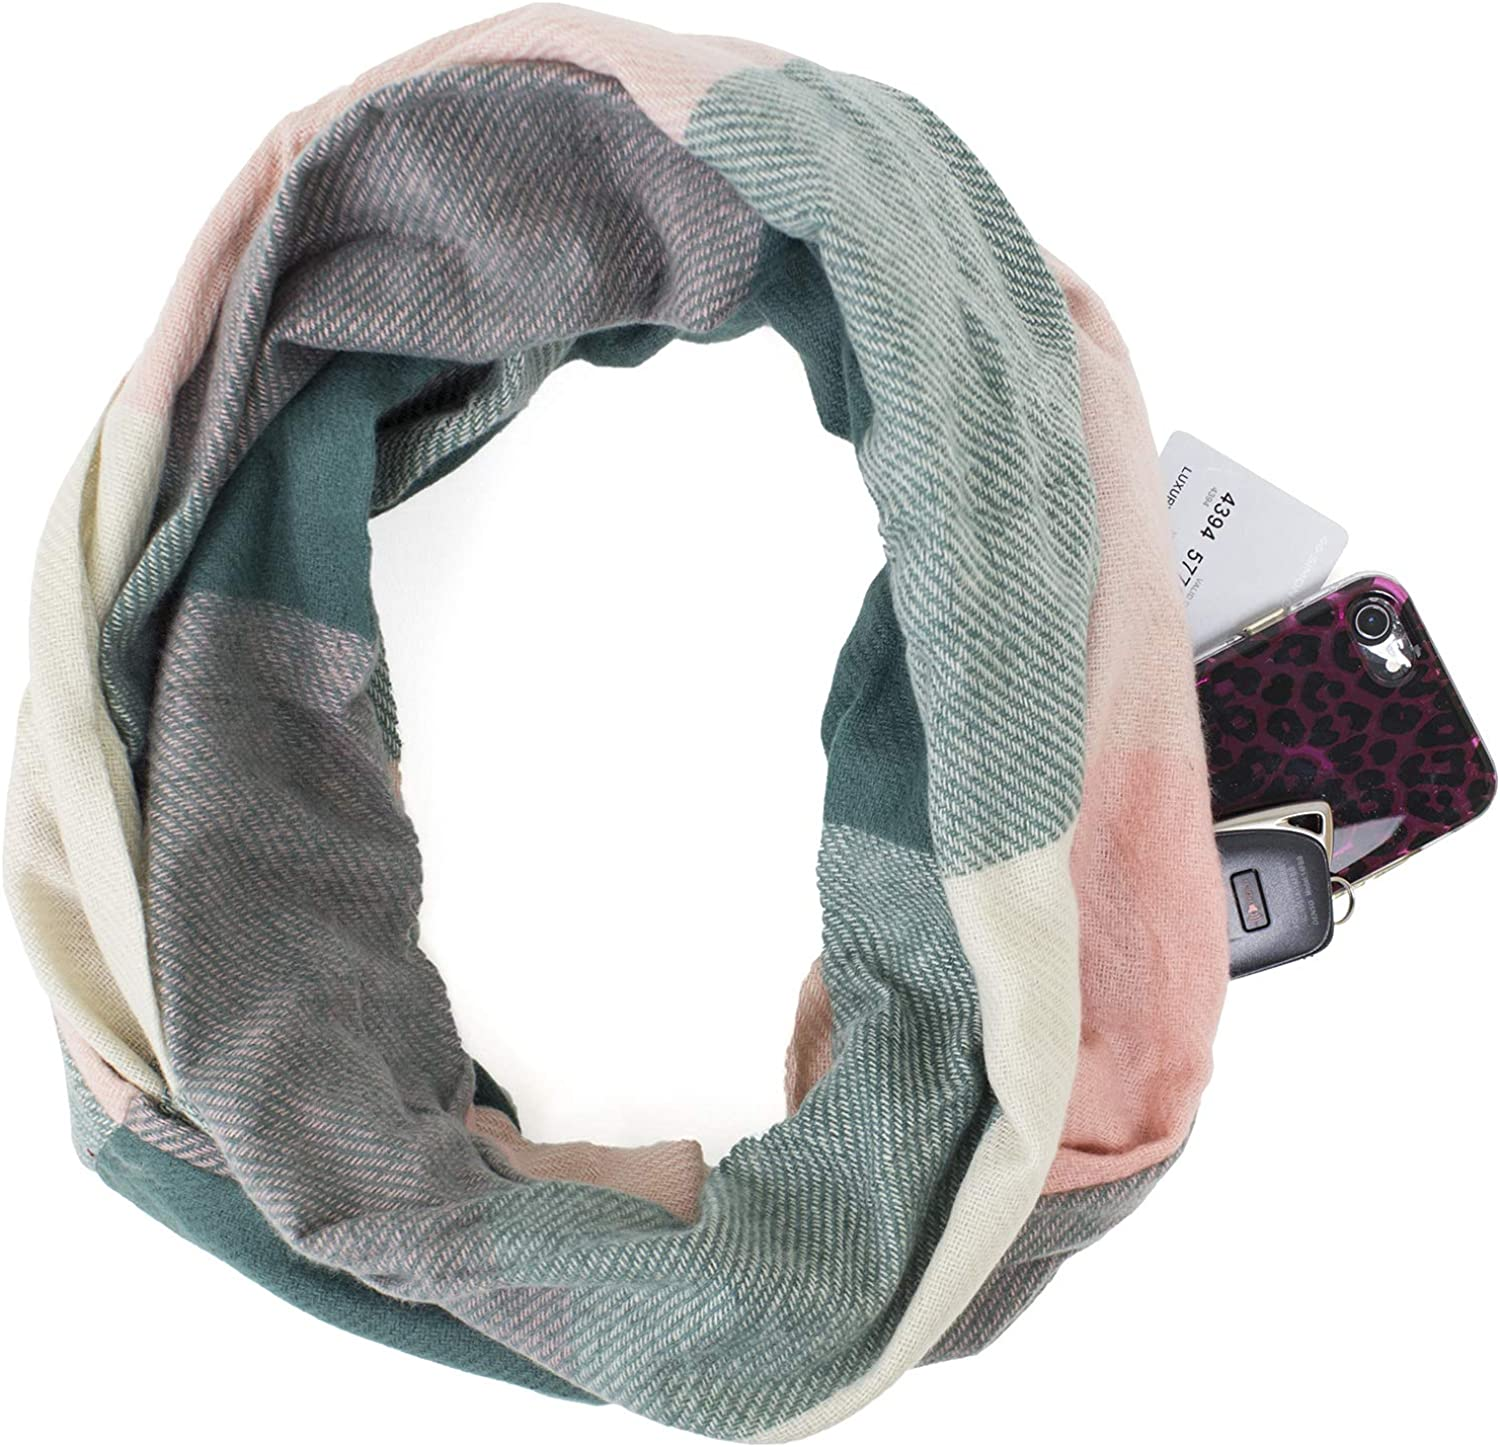 StylesILove Winter Plaid Infinity Scarf with Hidden Zipper Pocket Fashion Travel Scarf for Men Women and Teens